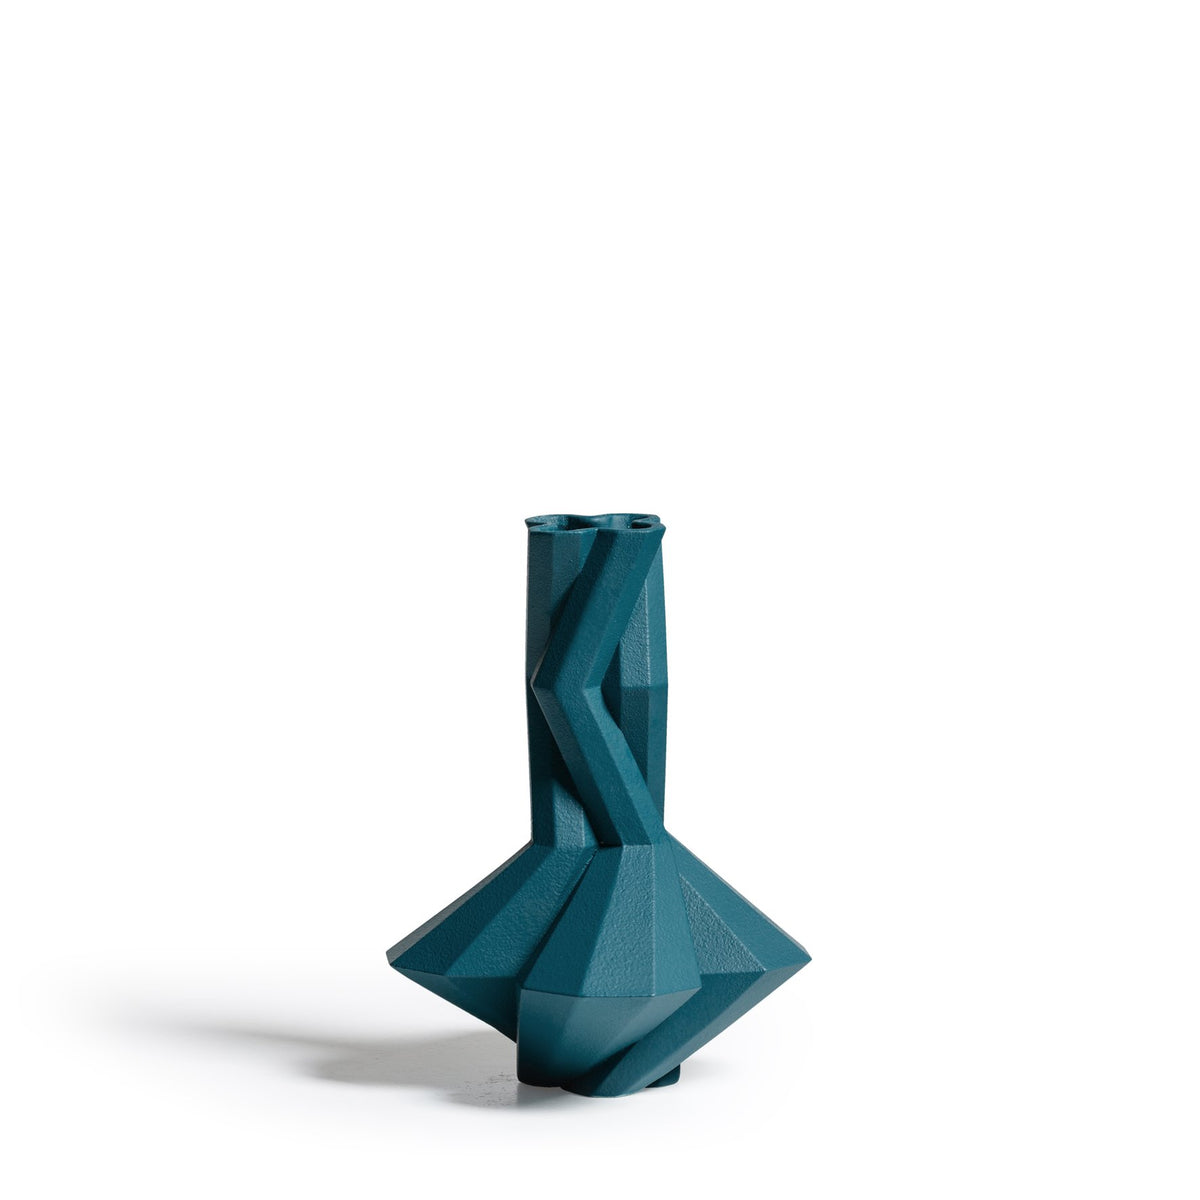 FORTRESS CUPOLA VASE - BLUE